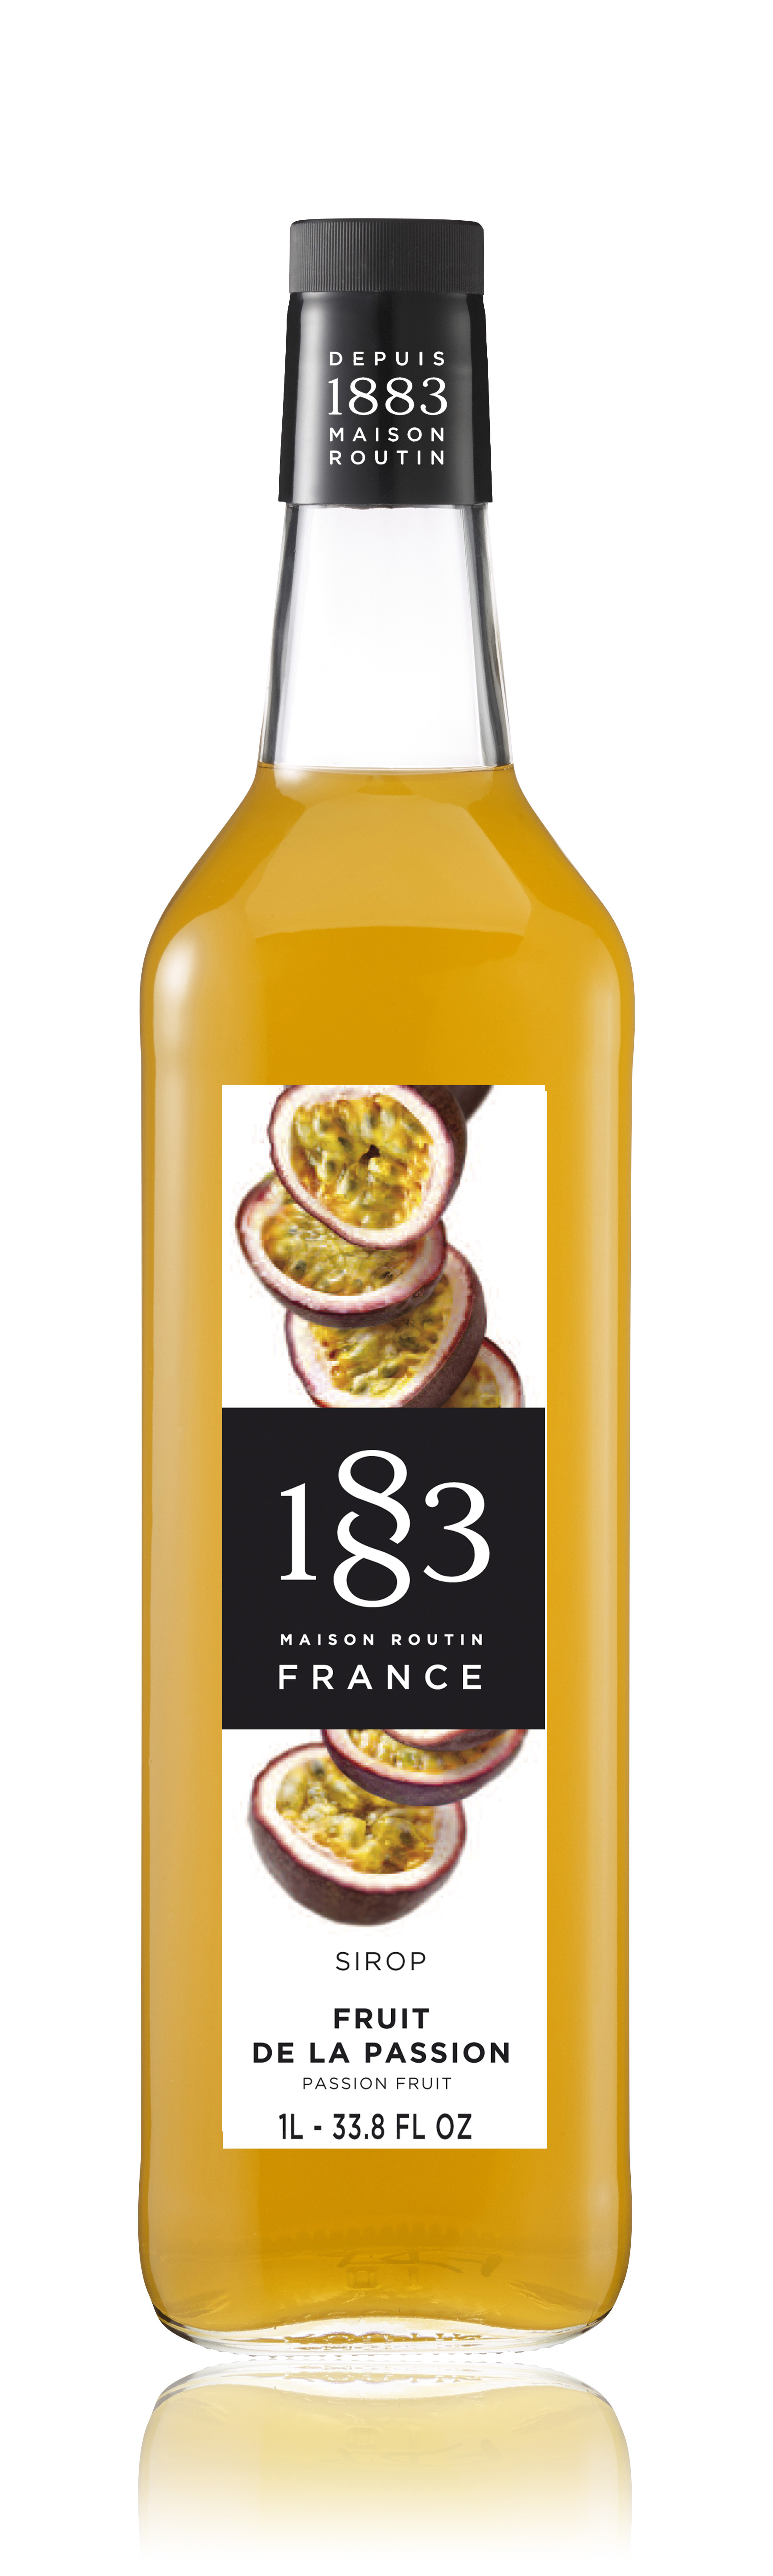 1883 Syrup Passion Fruit 1L Glass Bottle